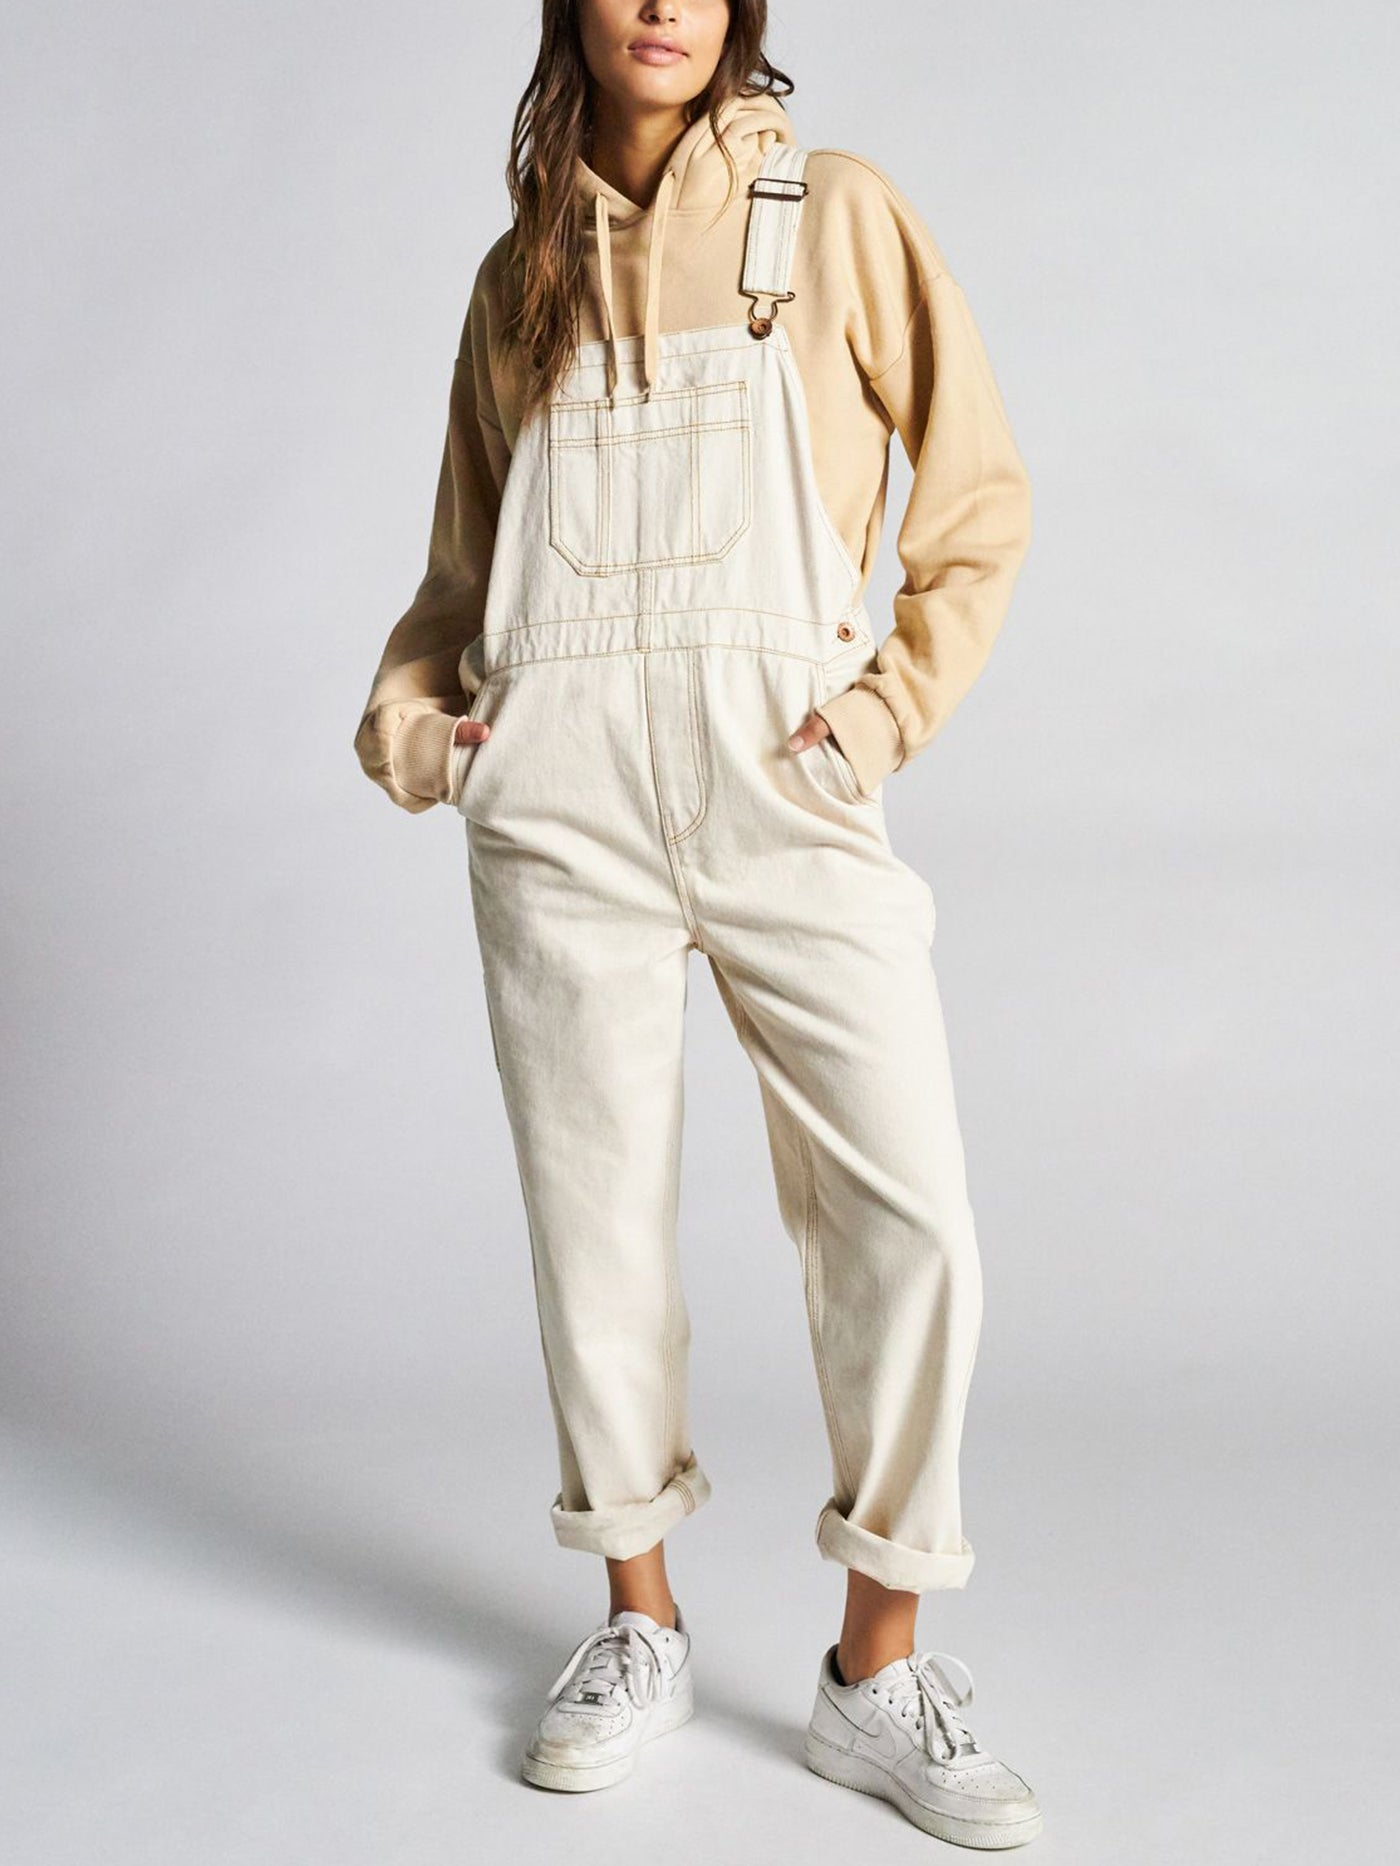 Christina Relaxed Fit Overall